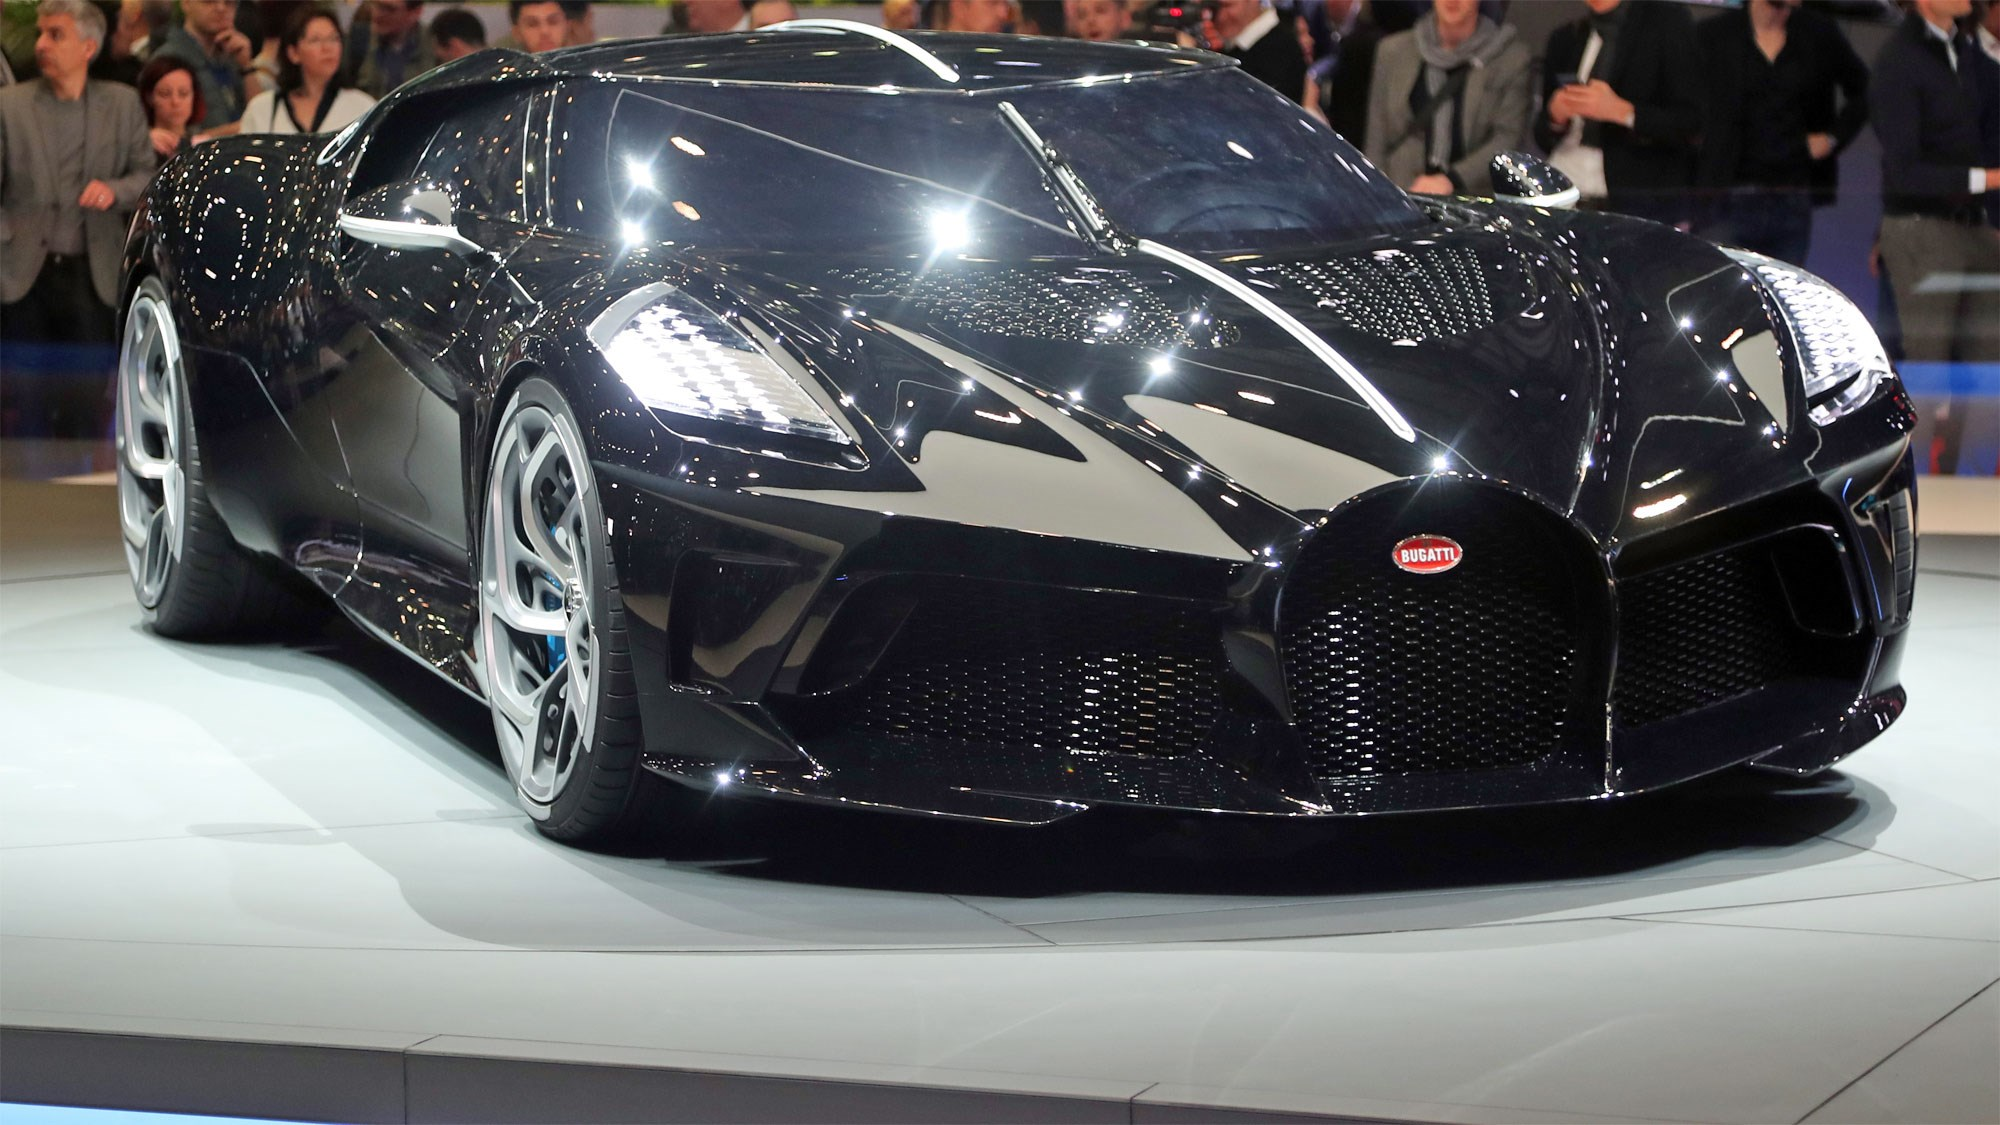 Most Expensive Maserati >> Bugatti Voiture Noire 13m Hyper Coupe Is World S Most